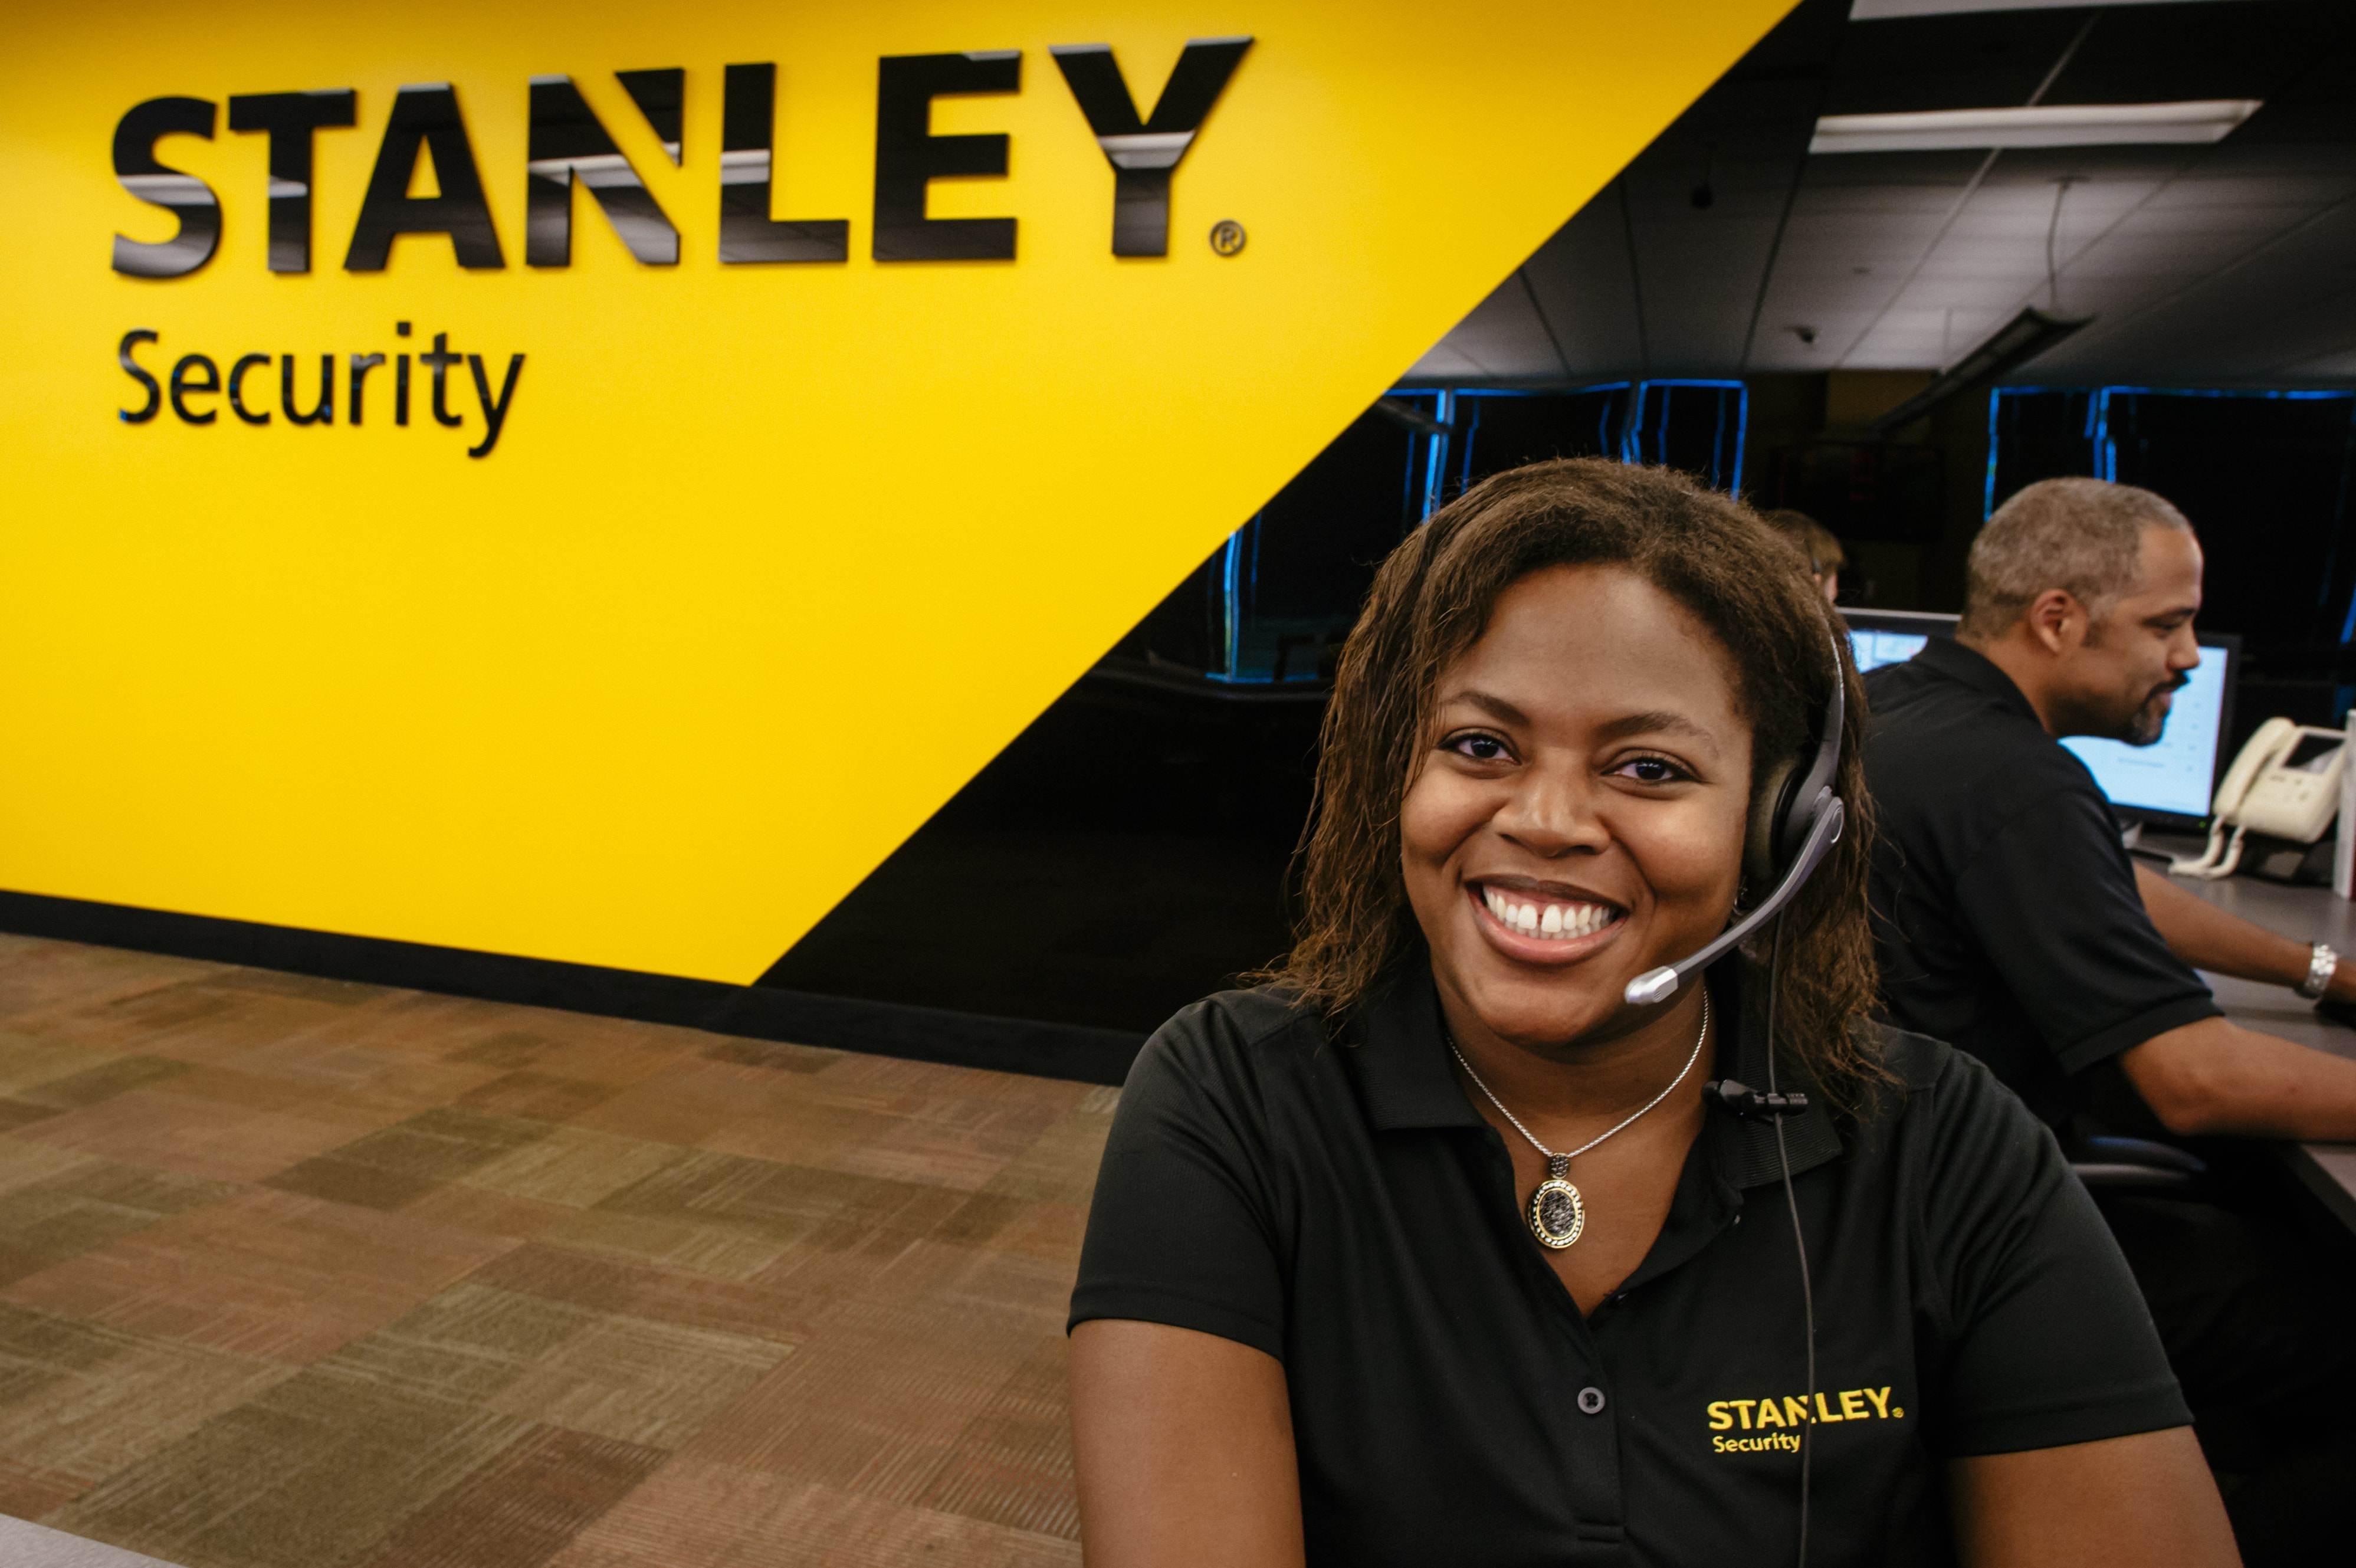 Intrusion Security System Monitoring Stanley Security